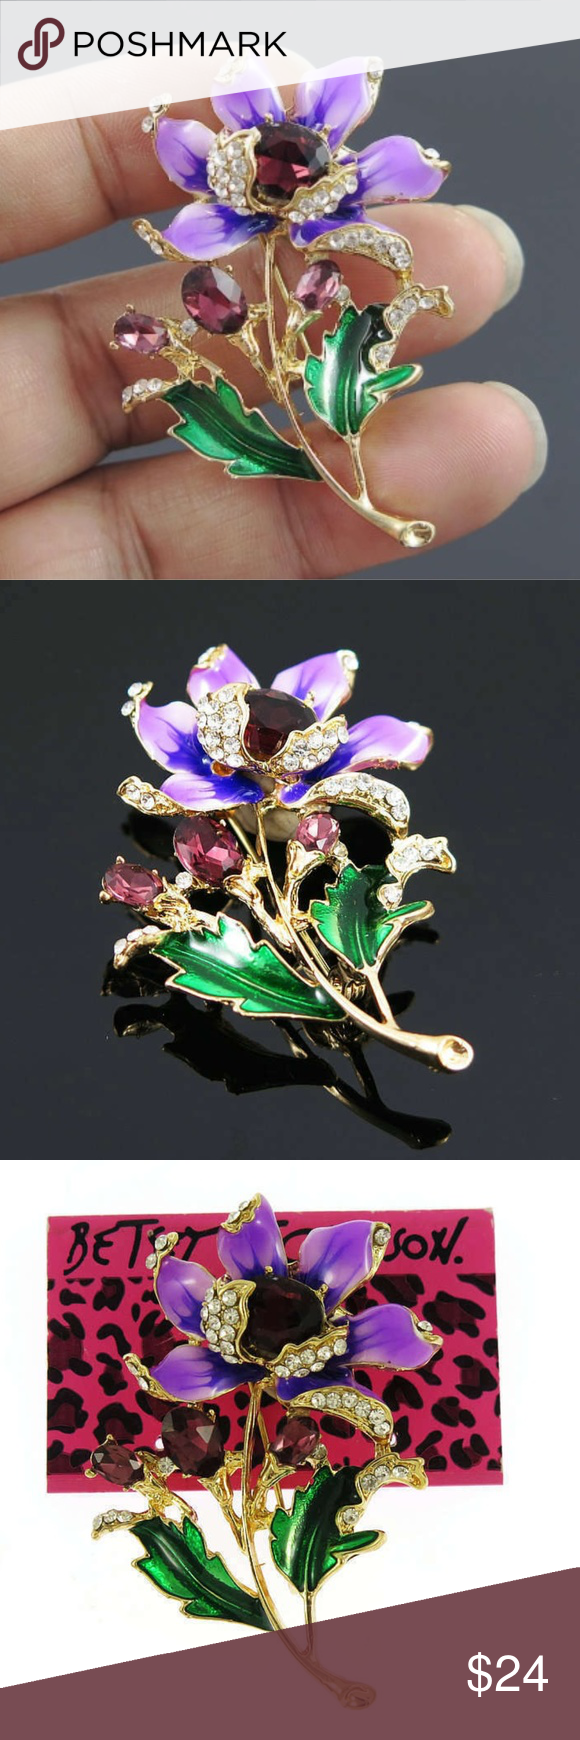 NWT- Purple Flower Rhinestones  Pendent & Brooch Details , details !  Take a look at this beauty!  It is stunningly gorgeous piece.  Made with cz's and rhinestones. The purple enamel is striking. When something in life shows up this pretty,  you just gotta have it !   Wear with anything, you'll get tons of compliments!   Its a 2 in 1 ,  both a pendant  plus a brooch pin.  Necklace is free!  Betsey Johnson Brand.  Brand New with Tags  and comes with a gift box and wrapped with ribbon. Betsey John #gottahaveit